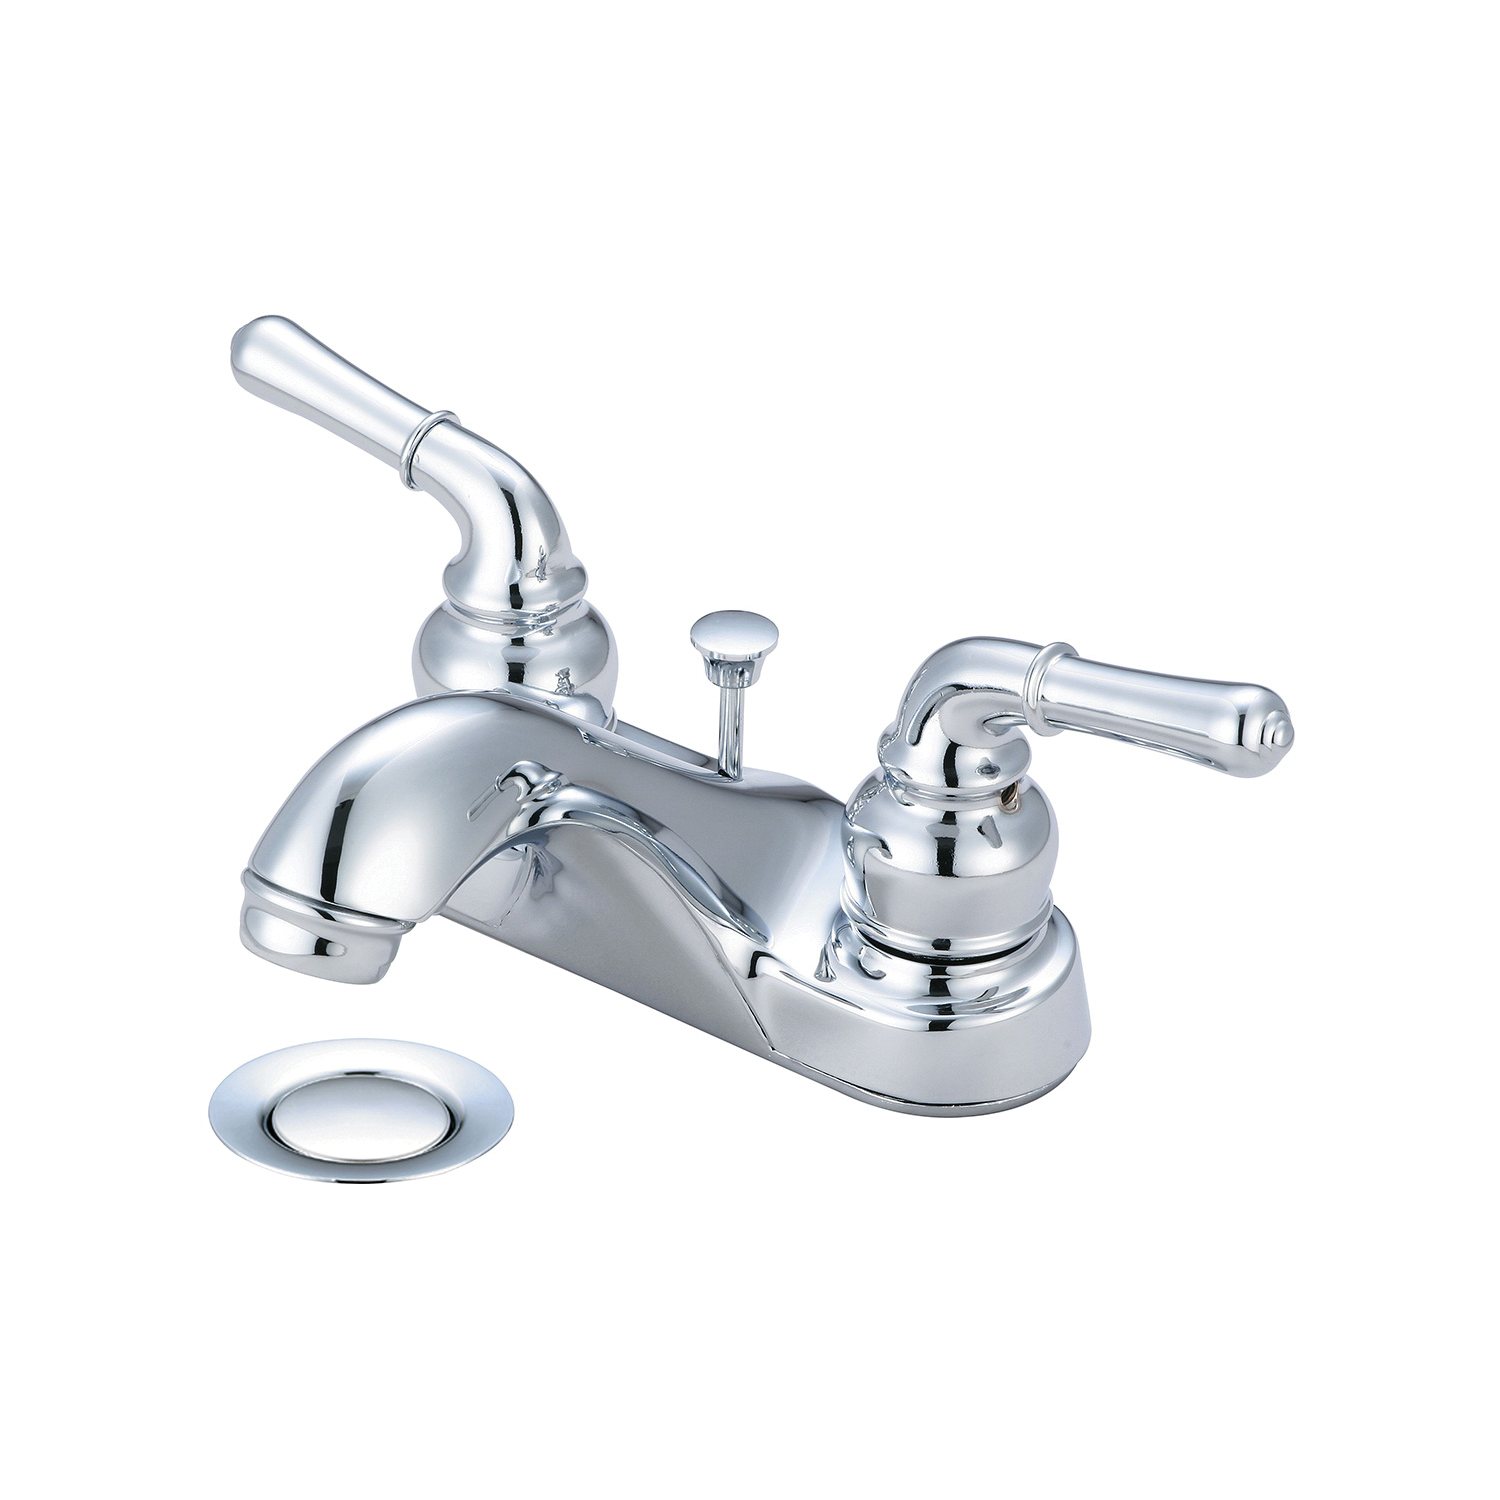 OLYMPIA L-7240 Accent Lavatory Faucet, Polished Chrome, 2 Handles, 50/50 Pop-Up Drain, 1.5 gpm Flow Rate